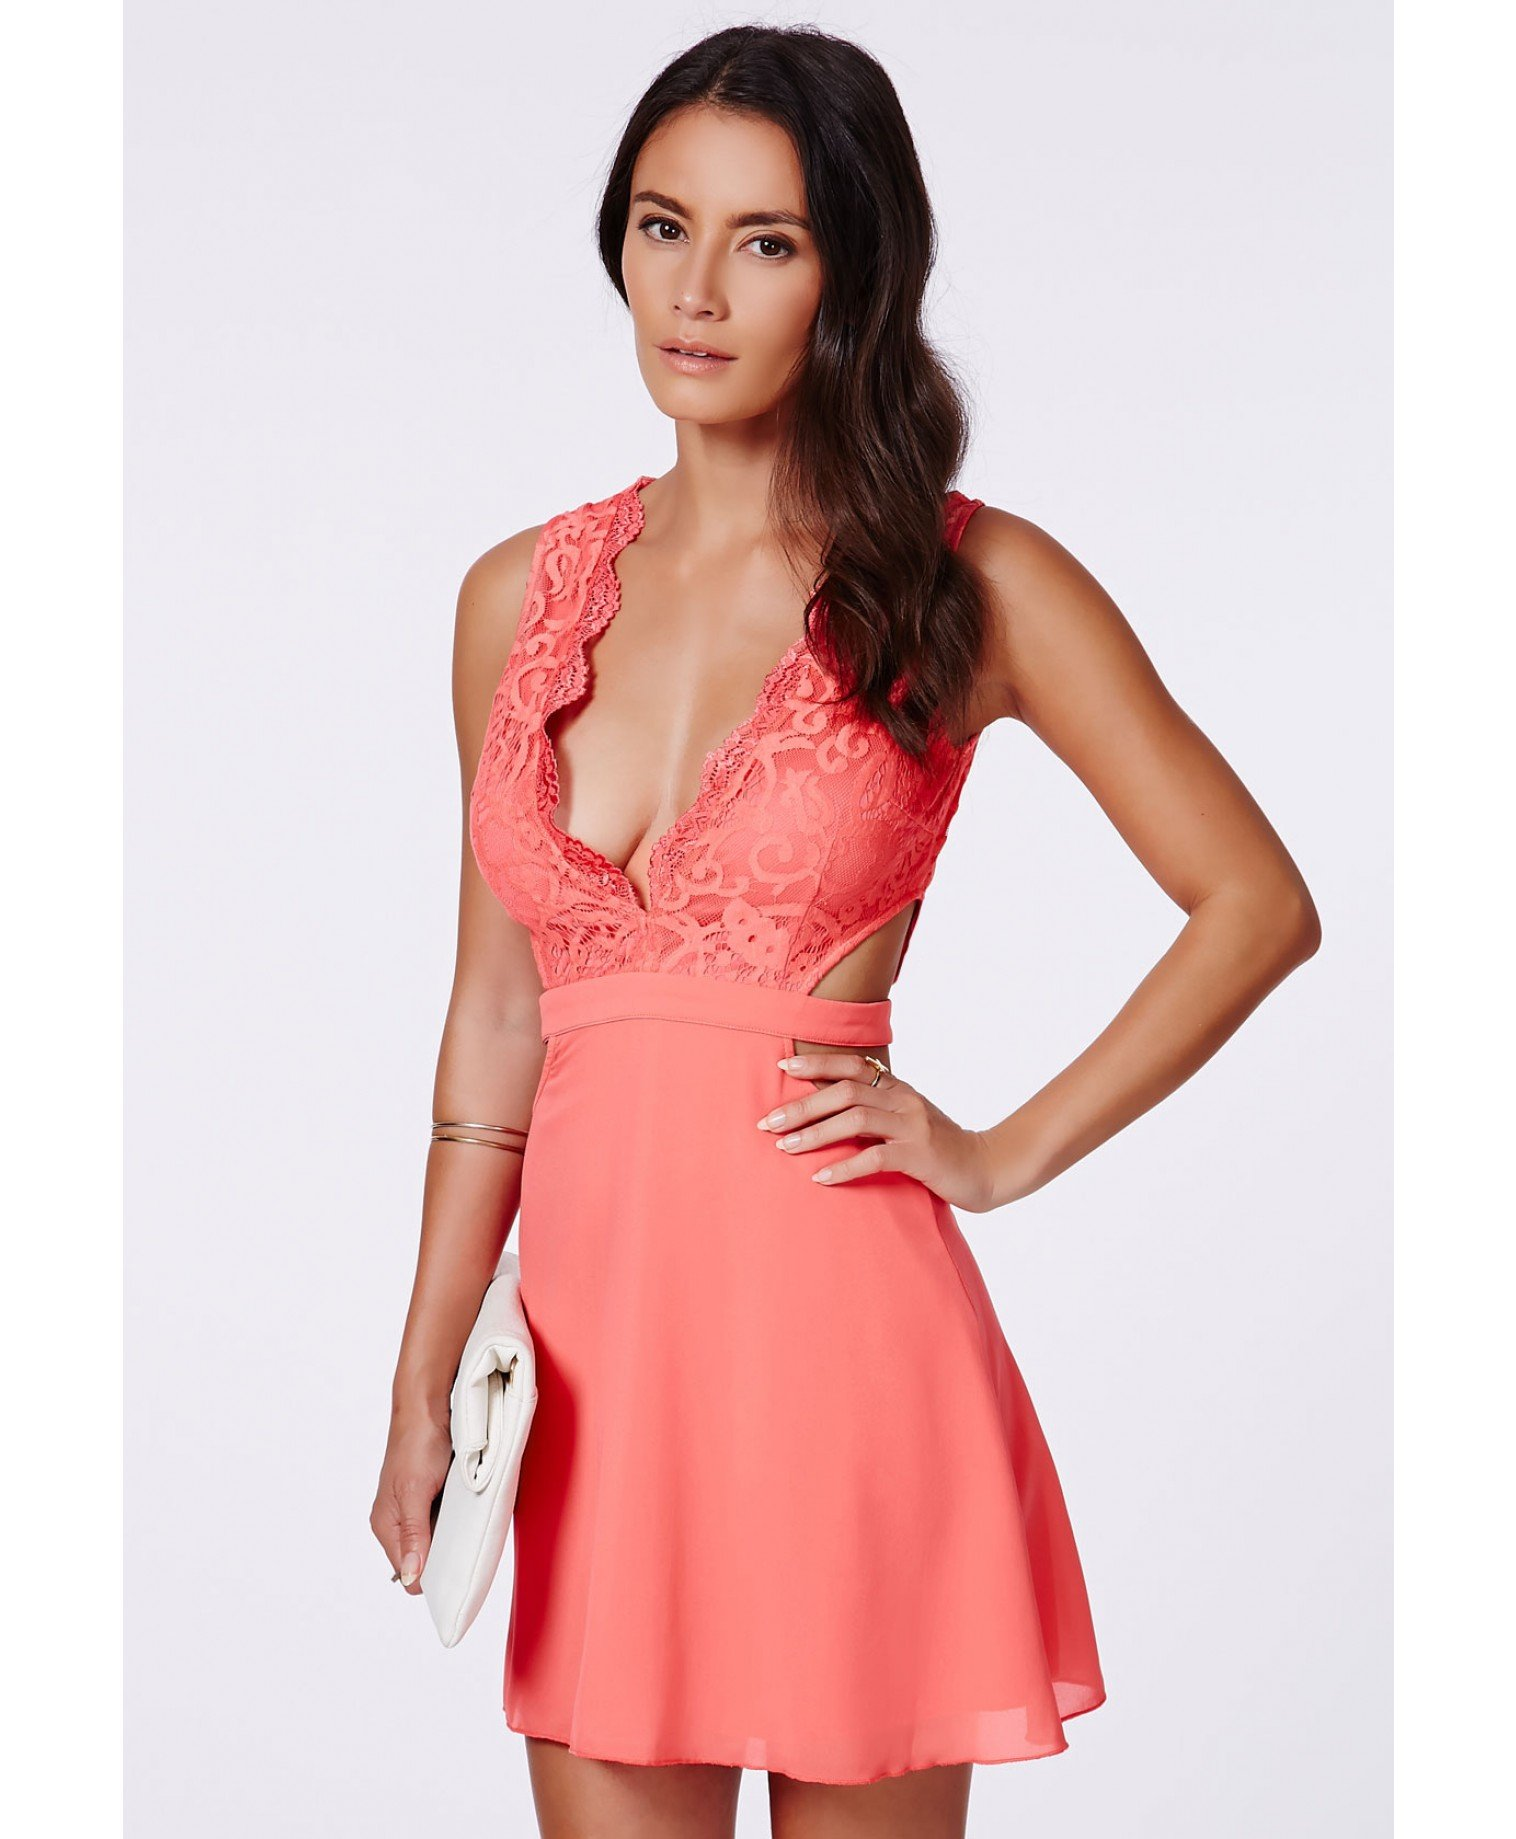 57c4d5d349 Missguided Roksy Coral Lace Plunge Cut Out Dress in Red - Lyst